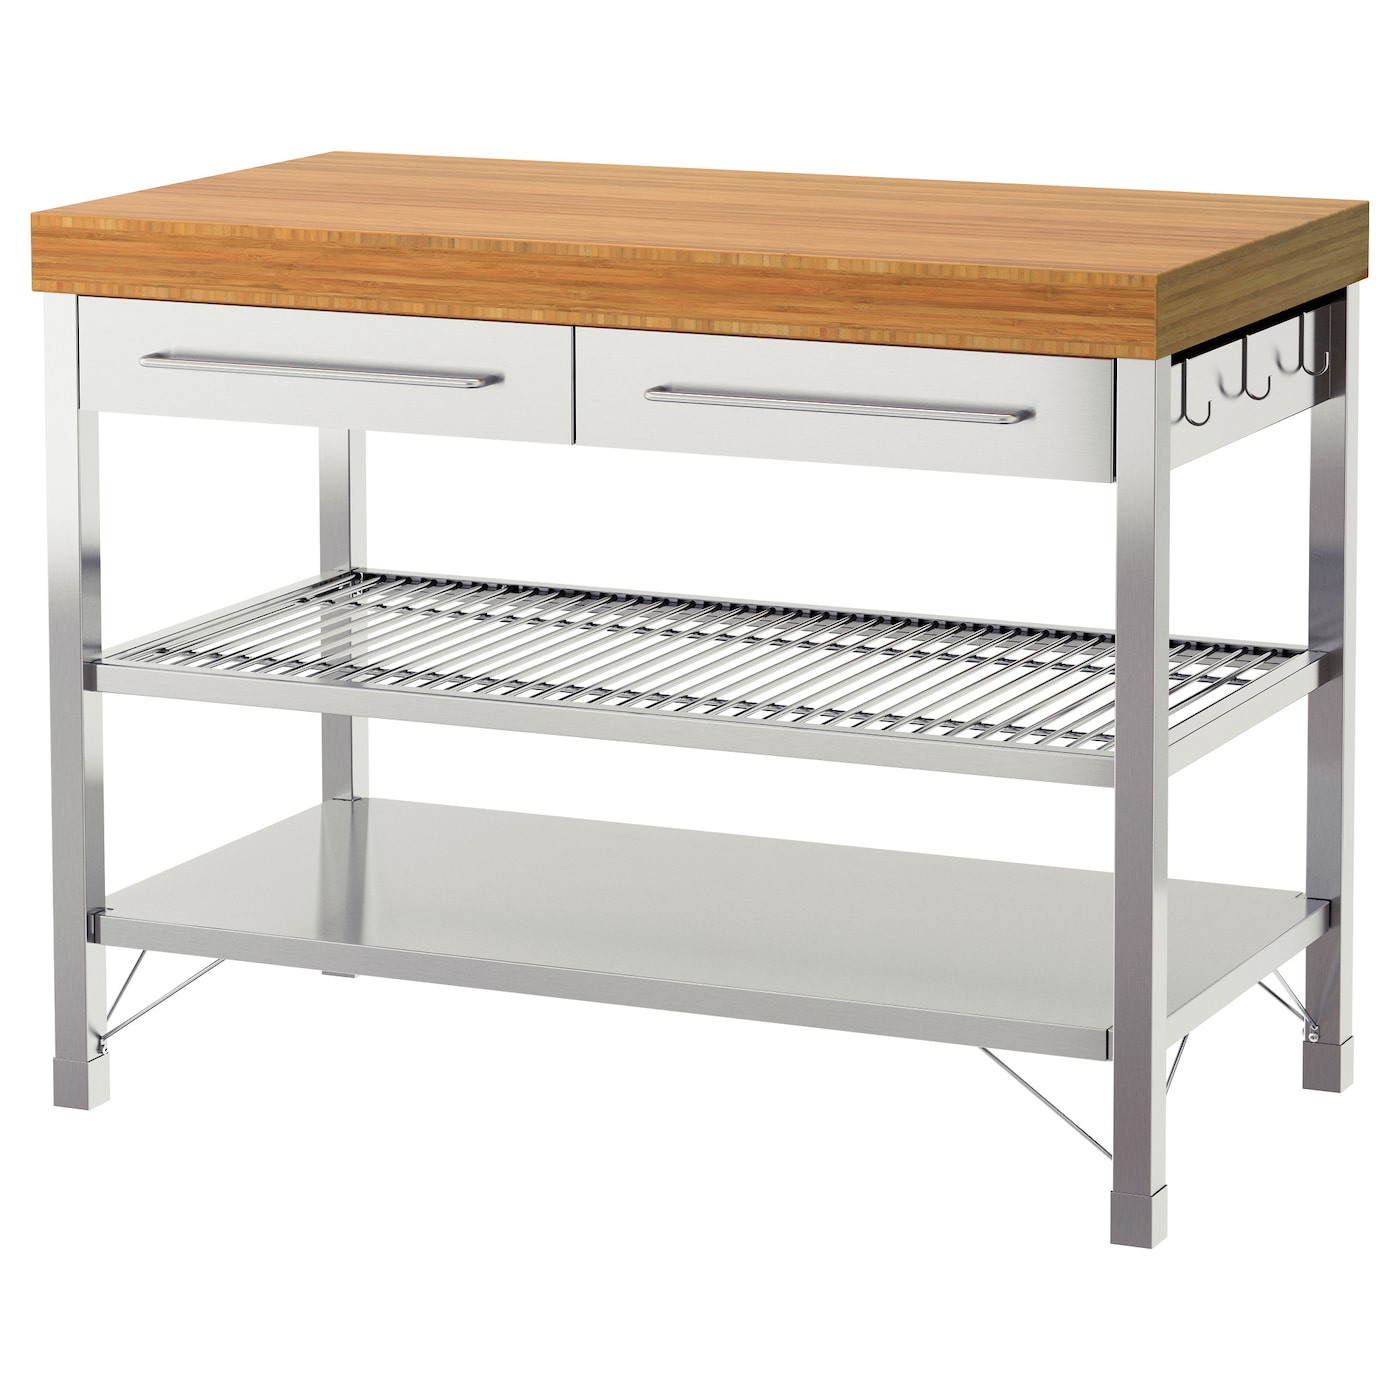 kitchen work table with storage rimforsa work bench stainless steel bamboo 120 x 63 5 x 92 8772